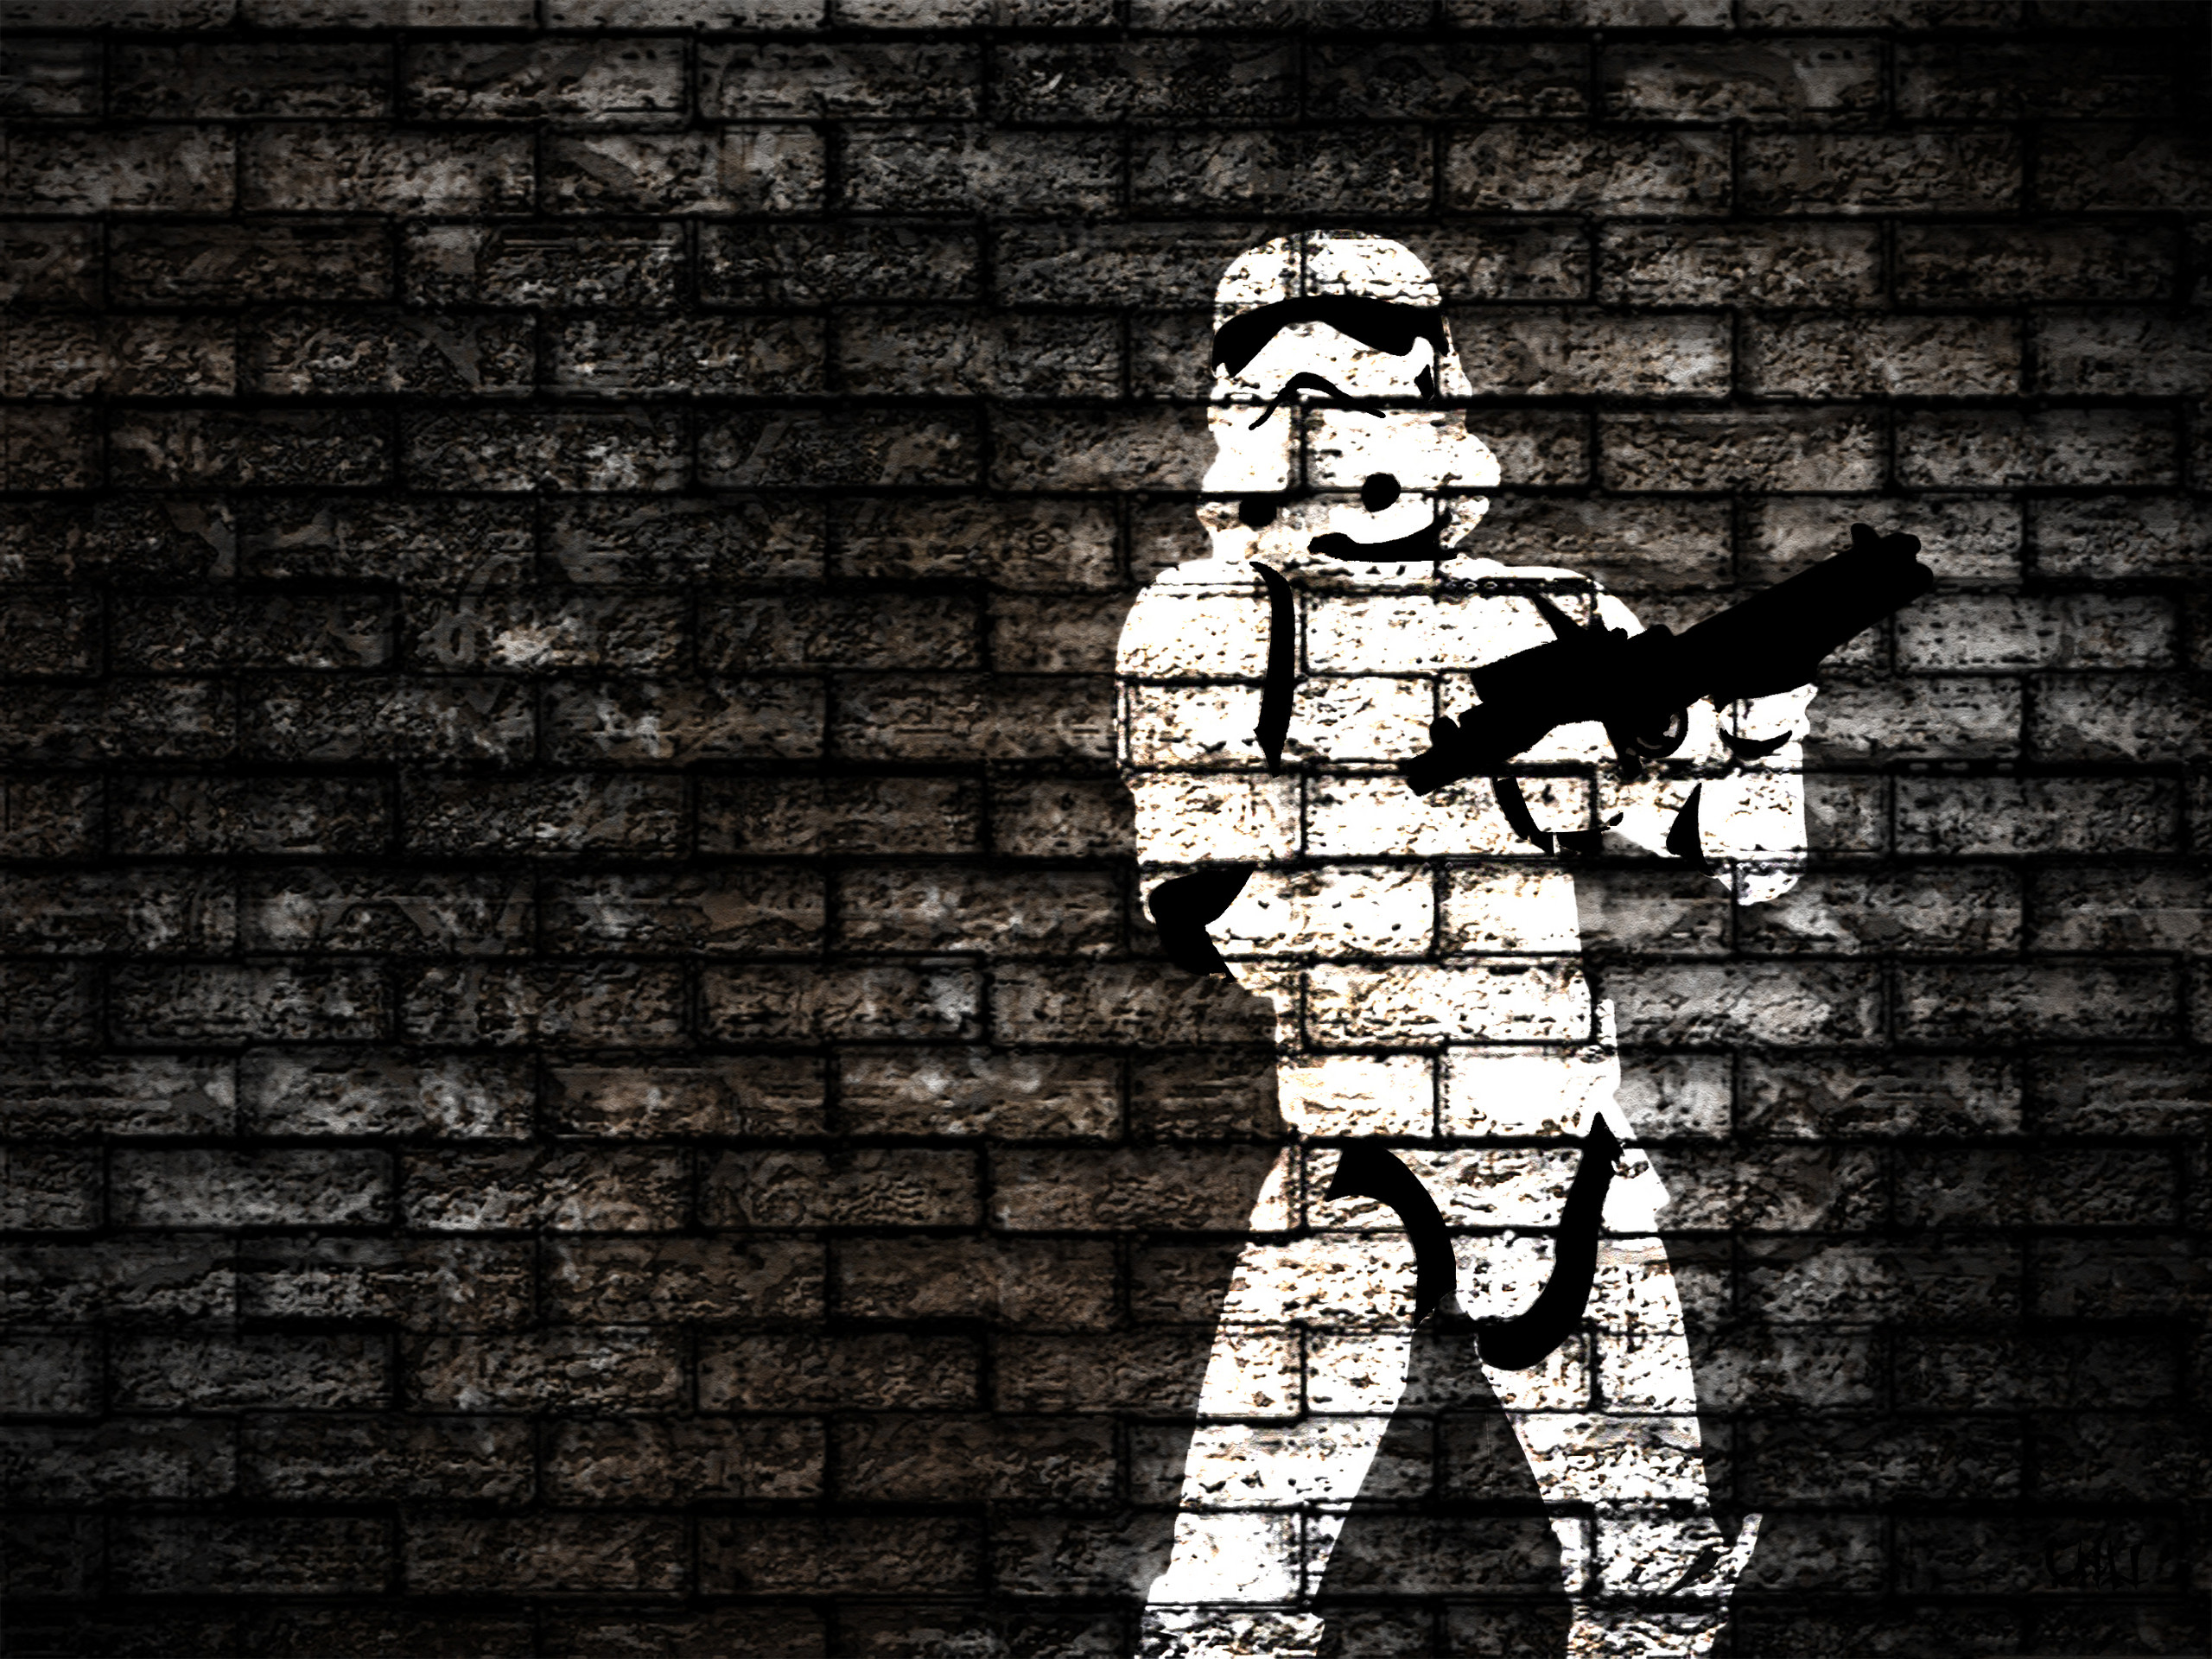 2560x1920 I made this wallpaper with photoshop.HD Wallpaper and background photos of Stormtrooper  Wallpaper for fans of Star Wars images.